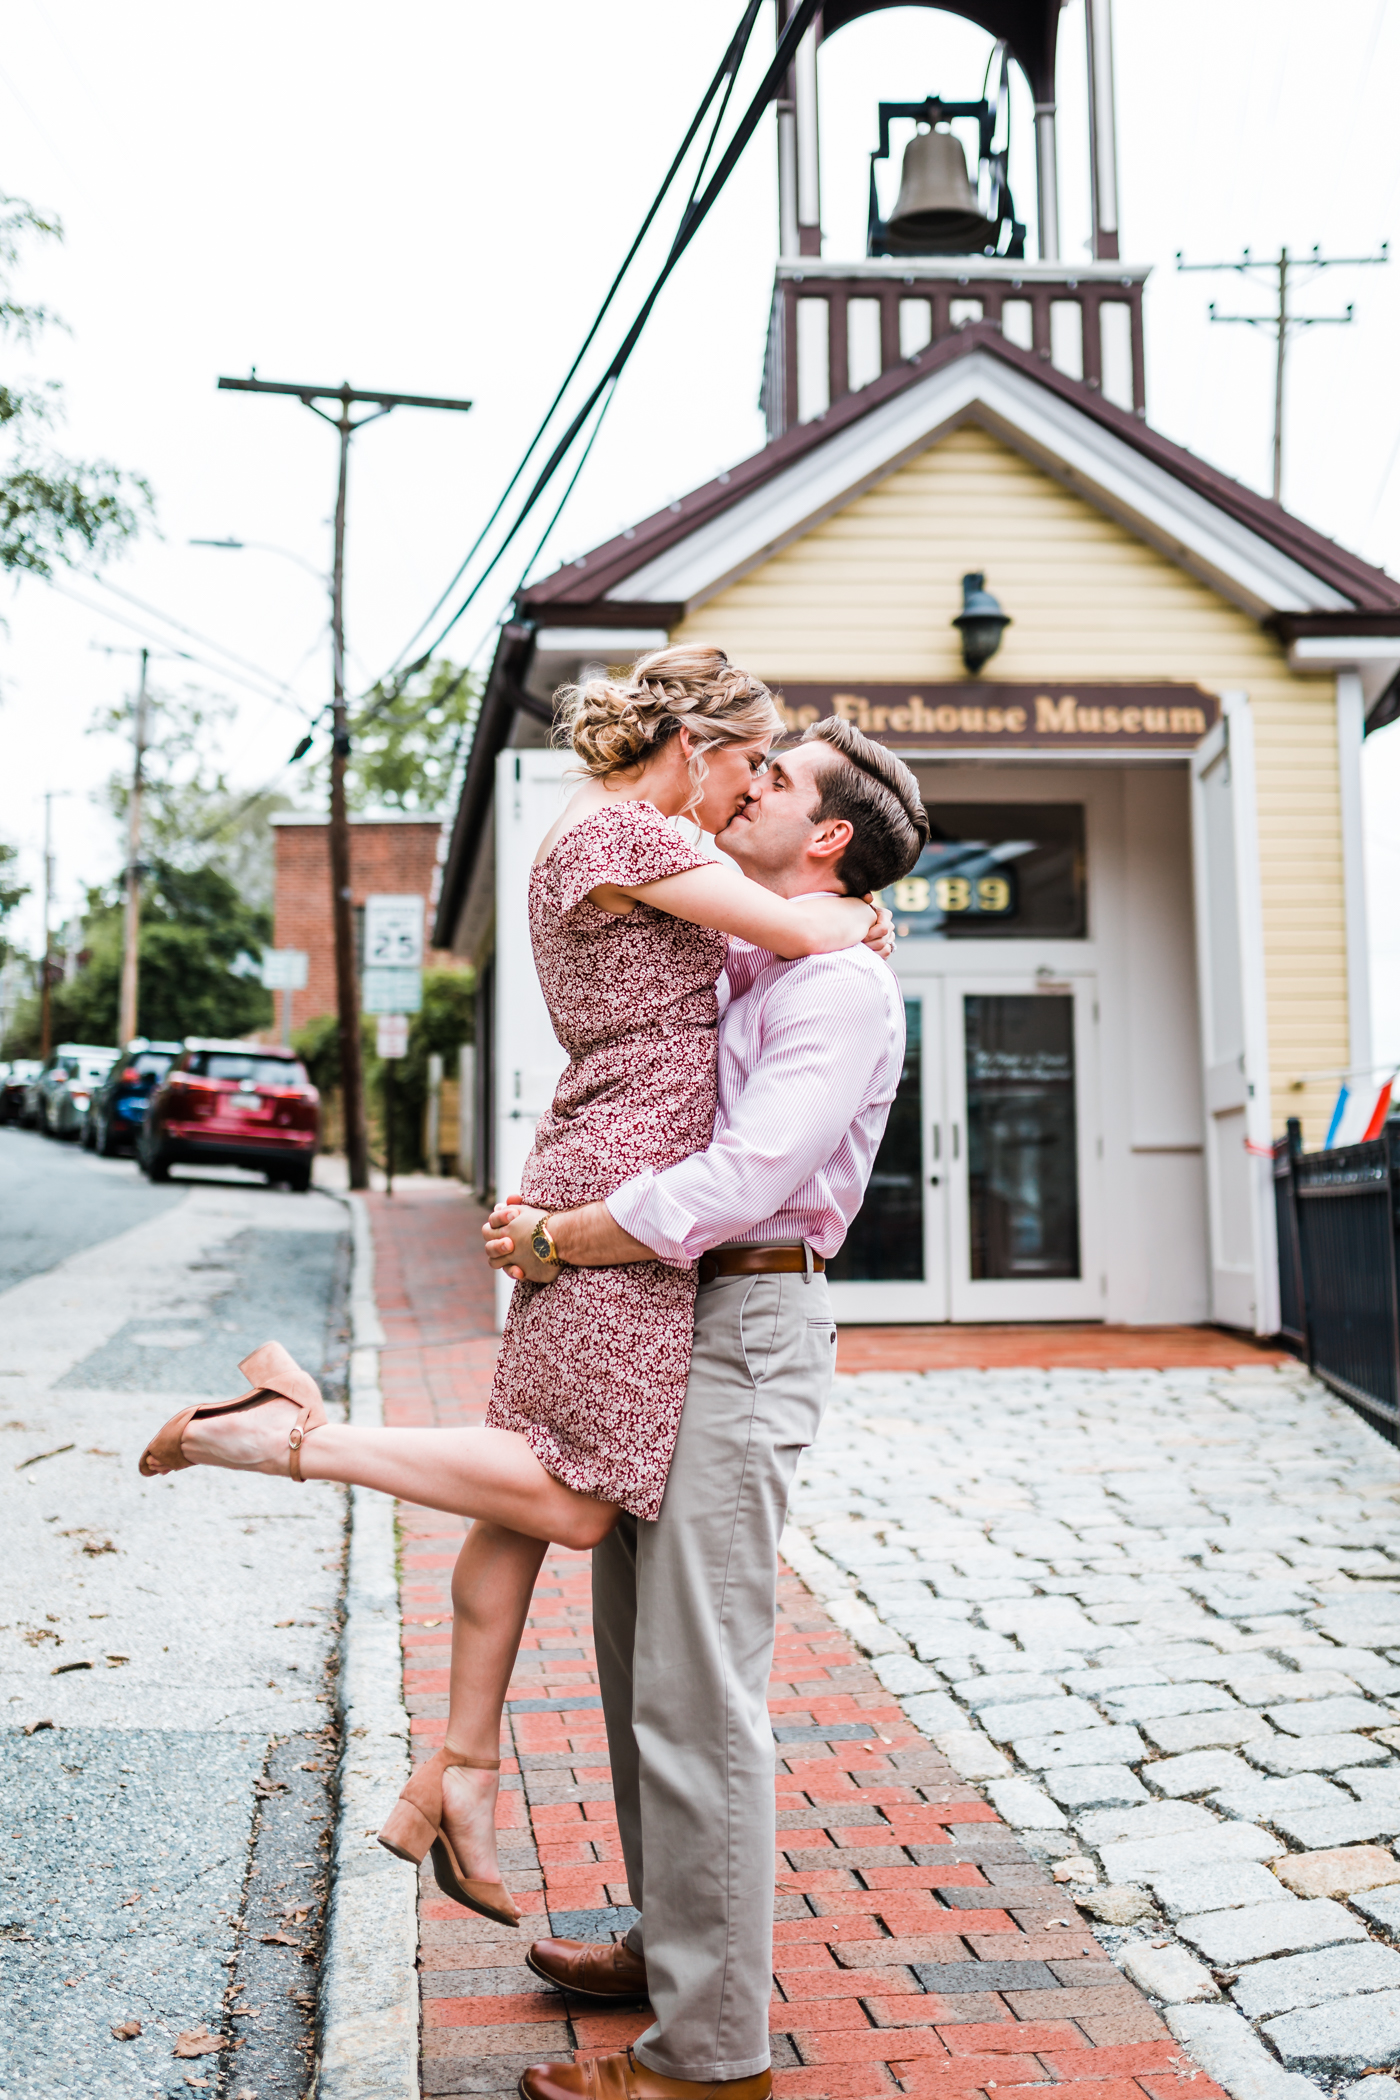 couple kissing in front of the firehouse museum in Ellicott City, MD